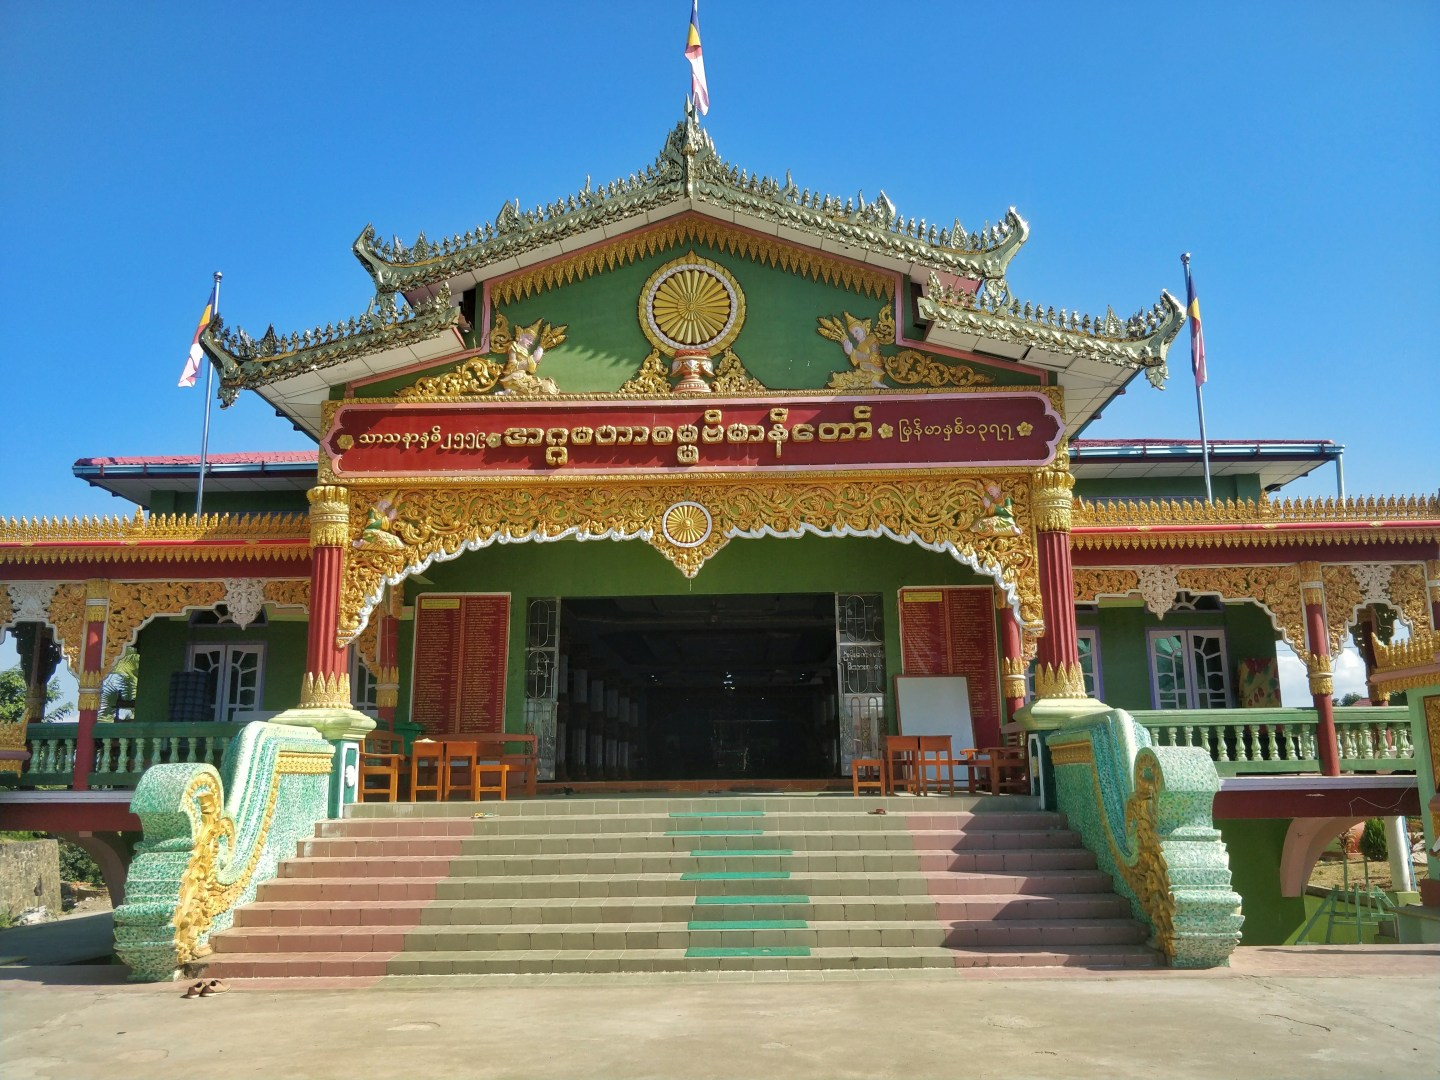 A nearby Buddhist monastery